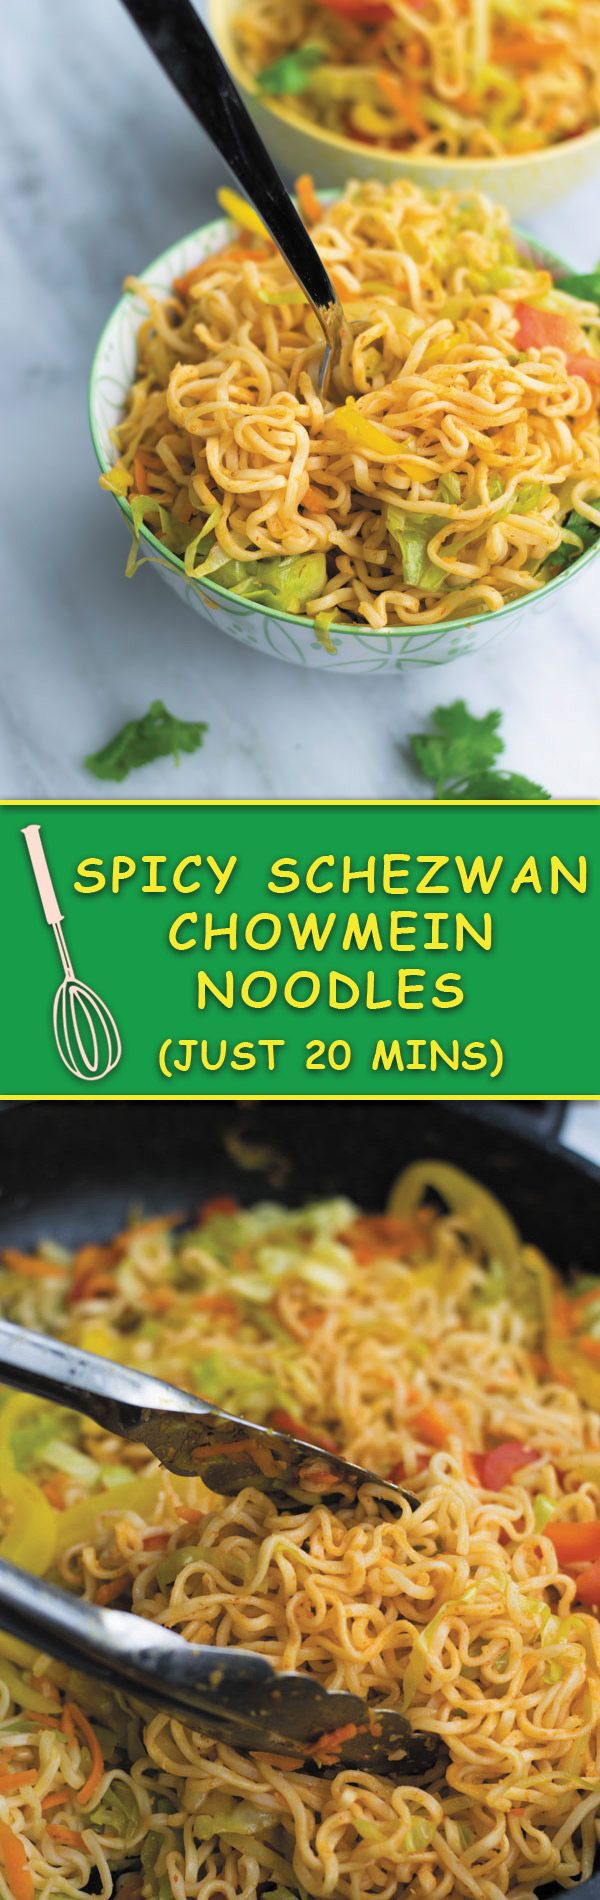 Spicy Schezwan Chow Mein Noodles Naive Cook Cooks Cooking Pasta Recipes Recipes